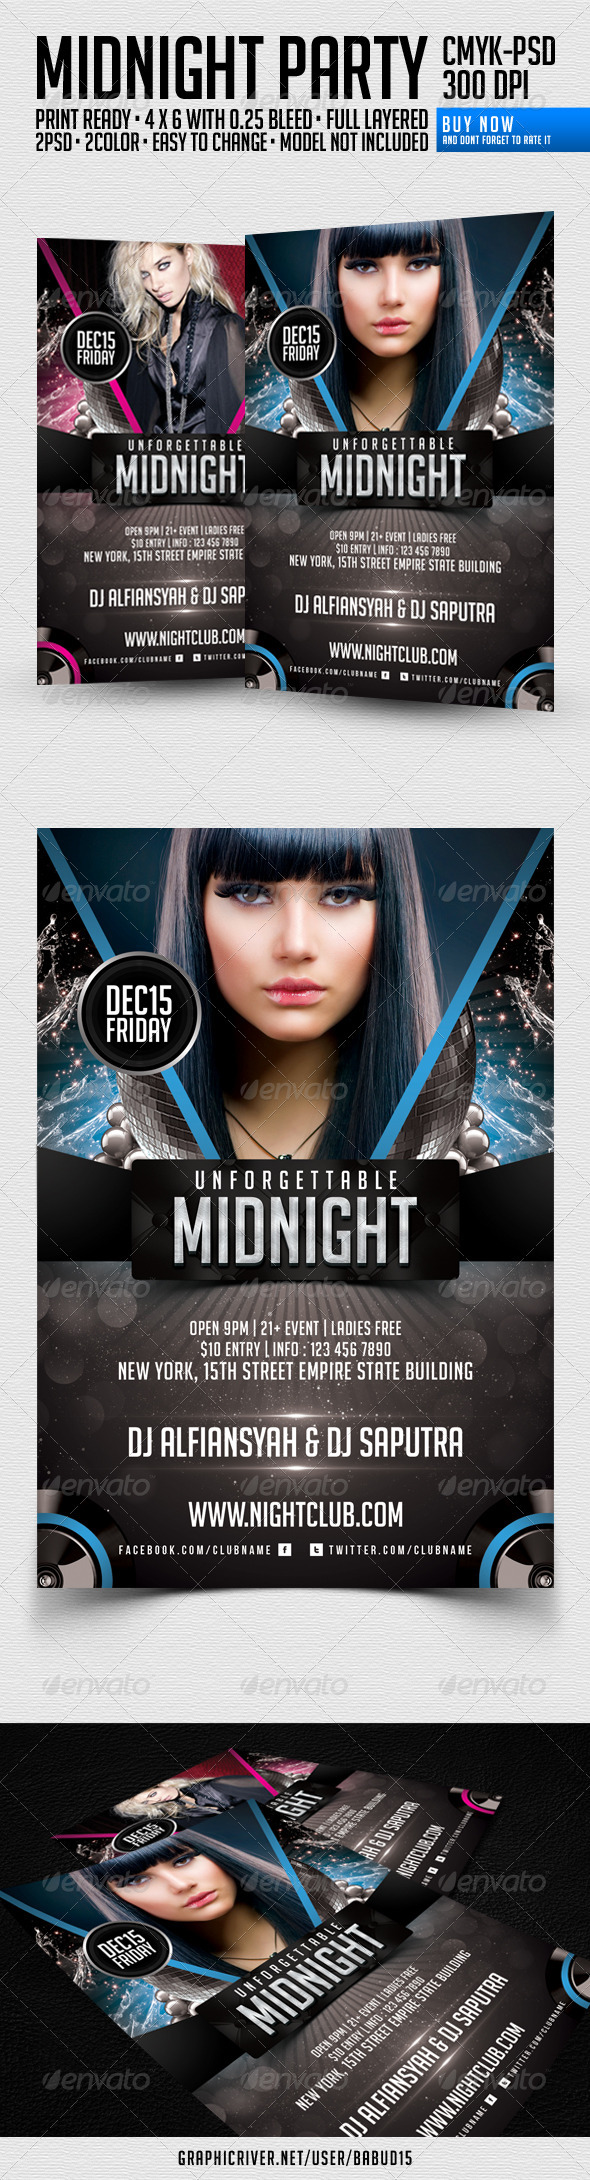 Unforgettable Midnight Flyer Template - Clubs & Parties Events